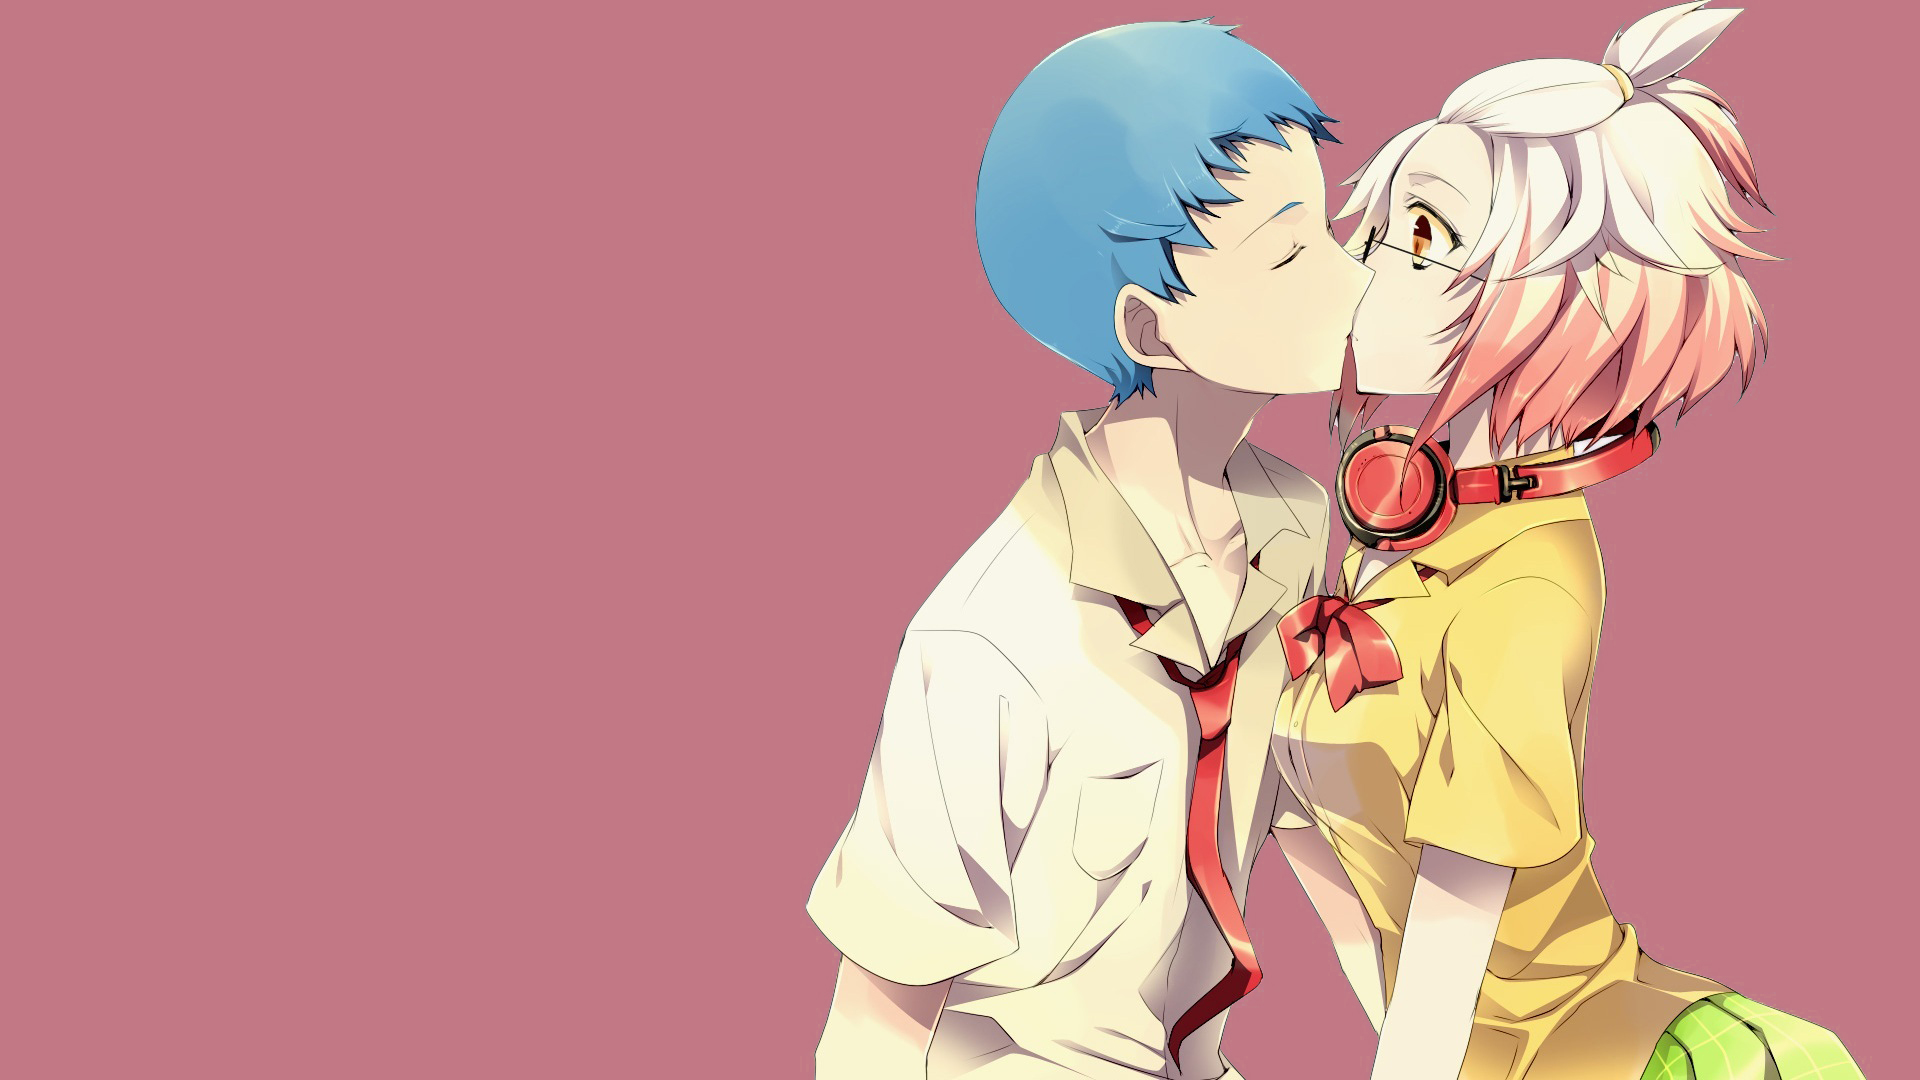 Anime couple surprise kiss